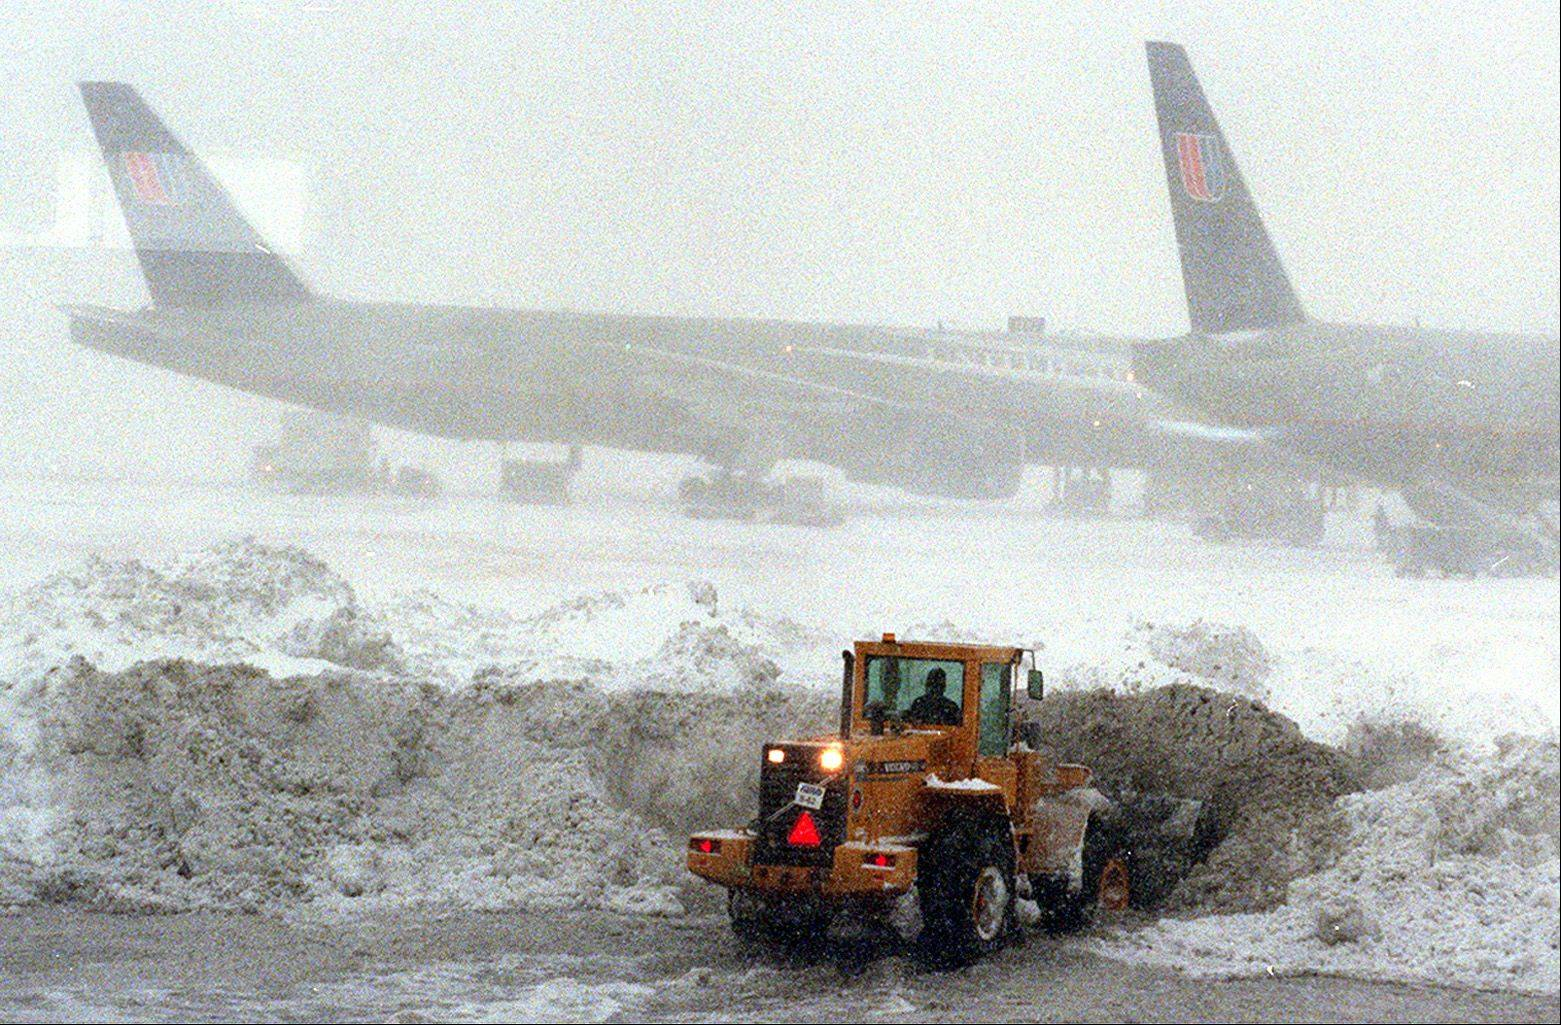 Crews try to clear the runways at O�Hare International Airport during the snowstorm of 1999.